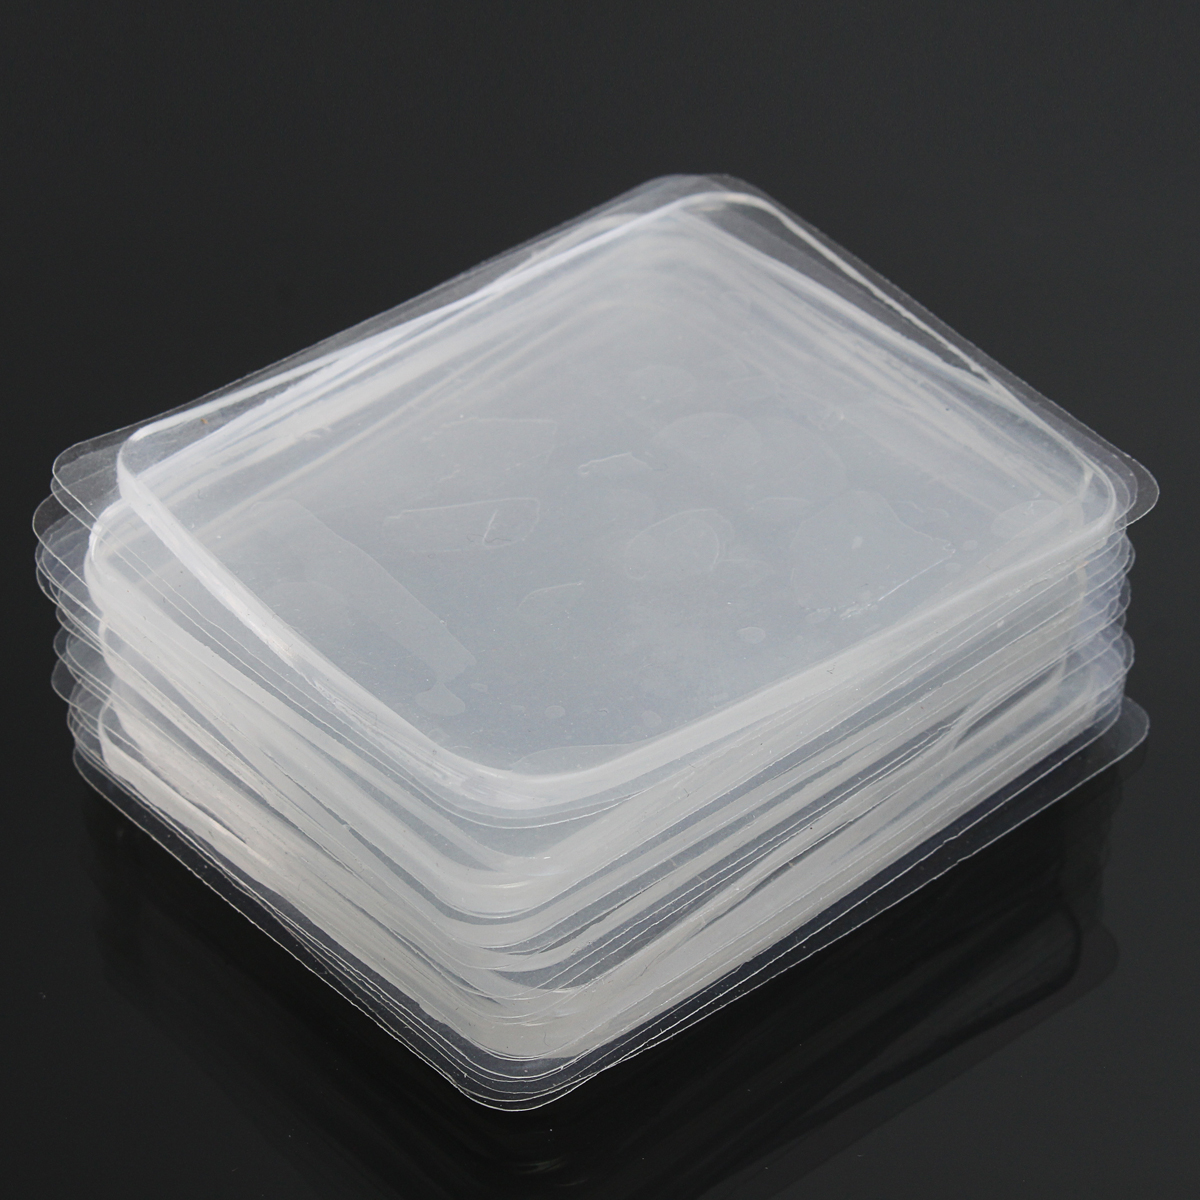 10pcs Transparent Silicone Gel Pad Antislip Multifunction